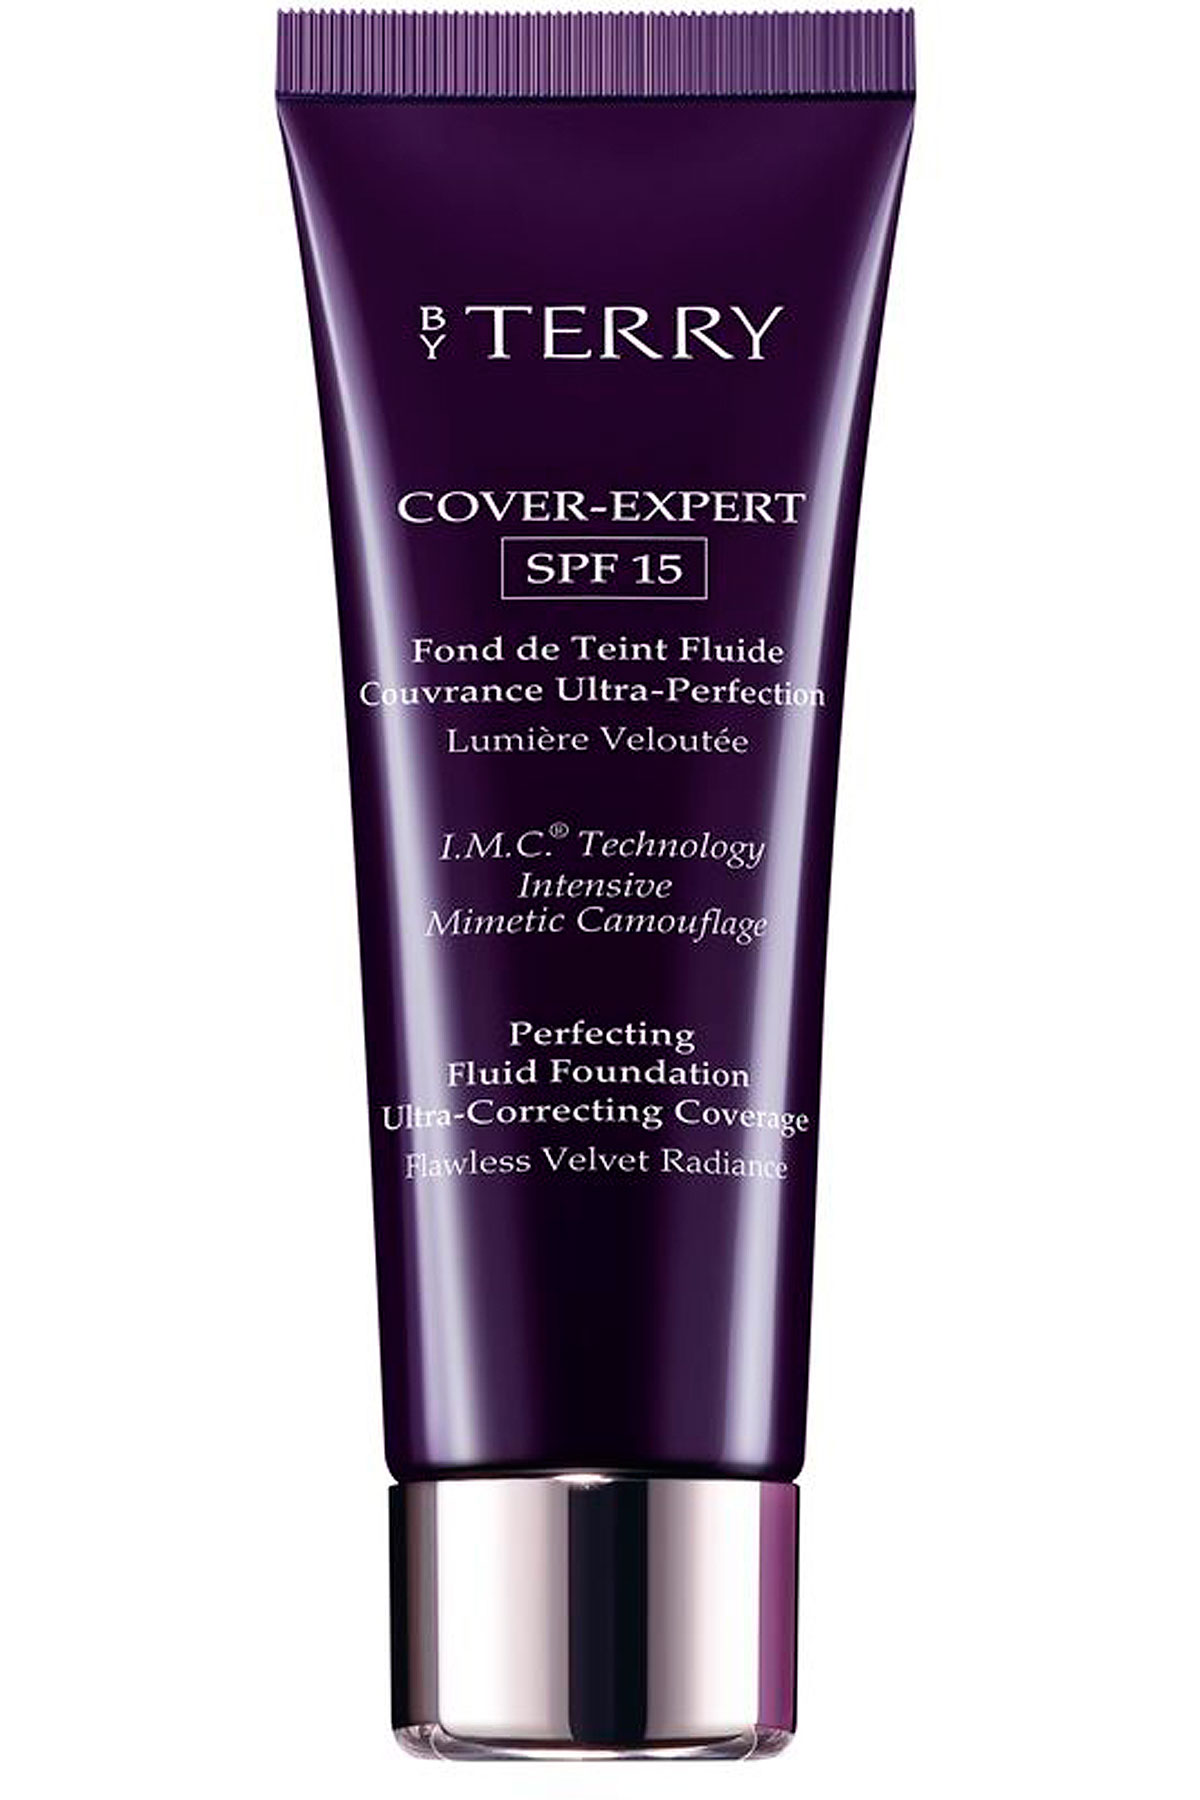 By Terry Makeup for Women, Cover-expert Spf15 - N.11 Amber Brown - 35 Ml, Amber Brown, 2019, 35 ml